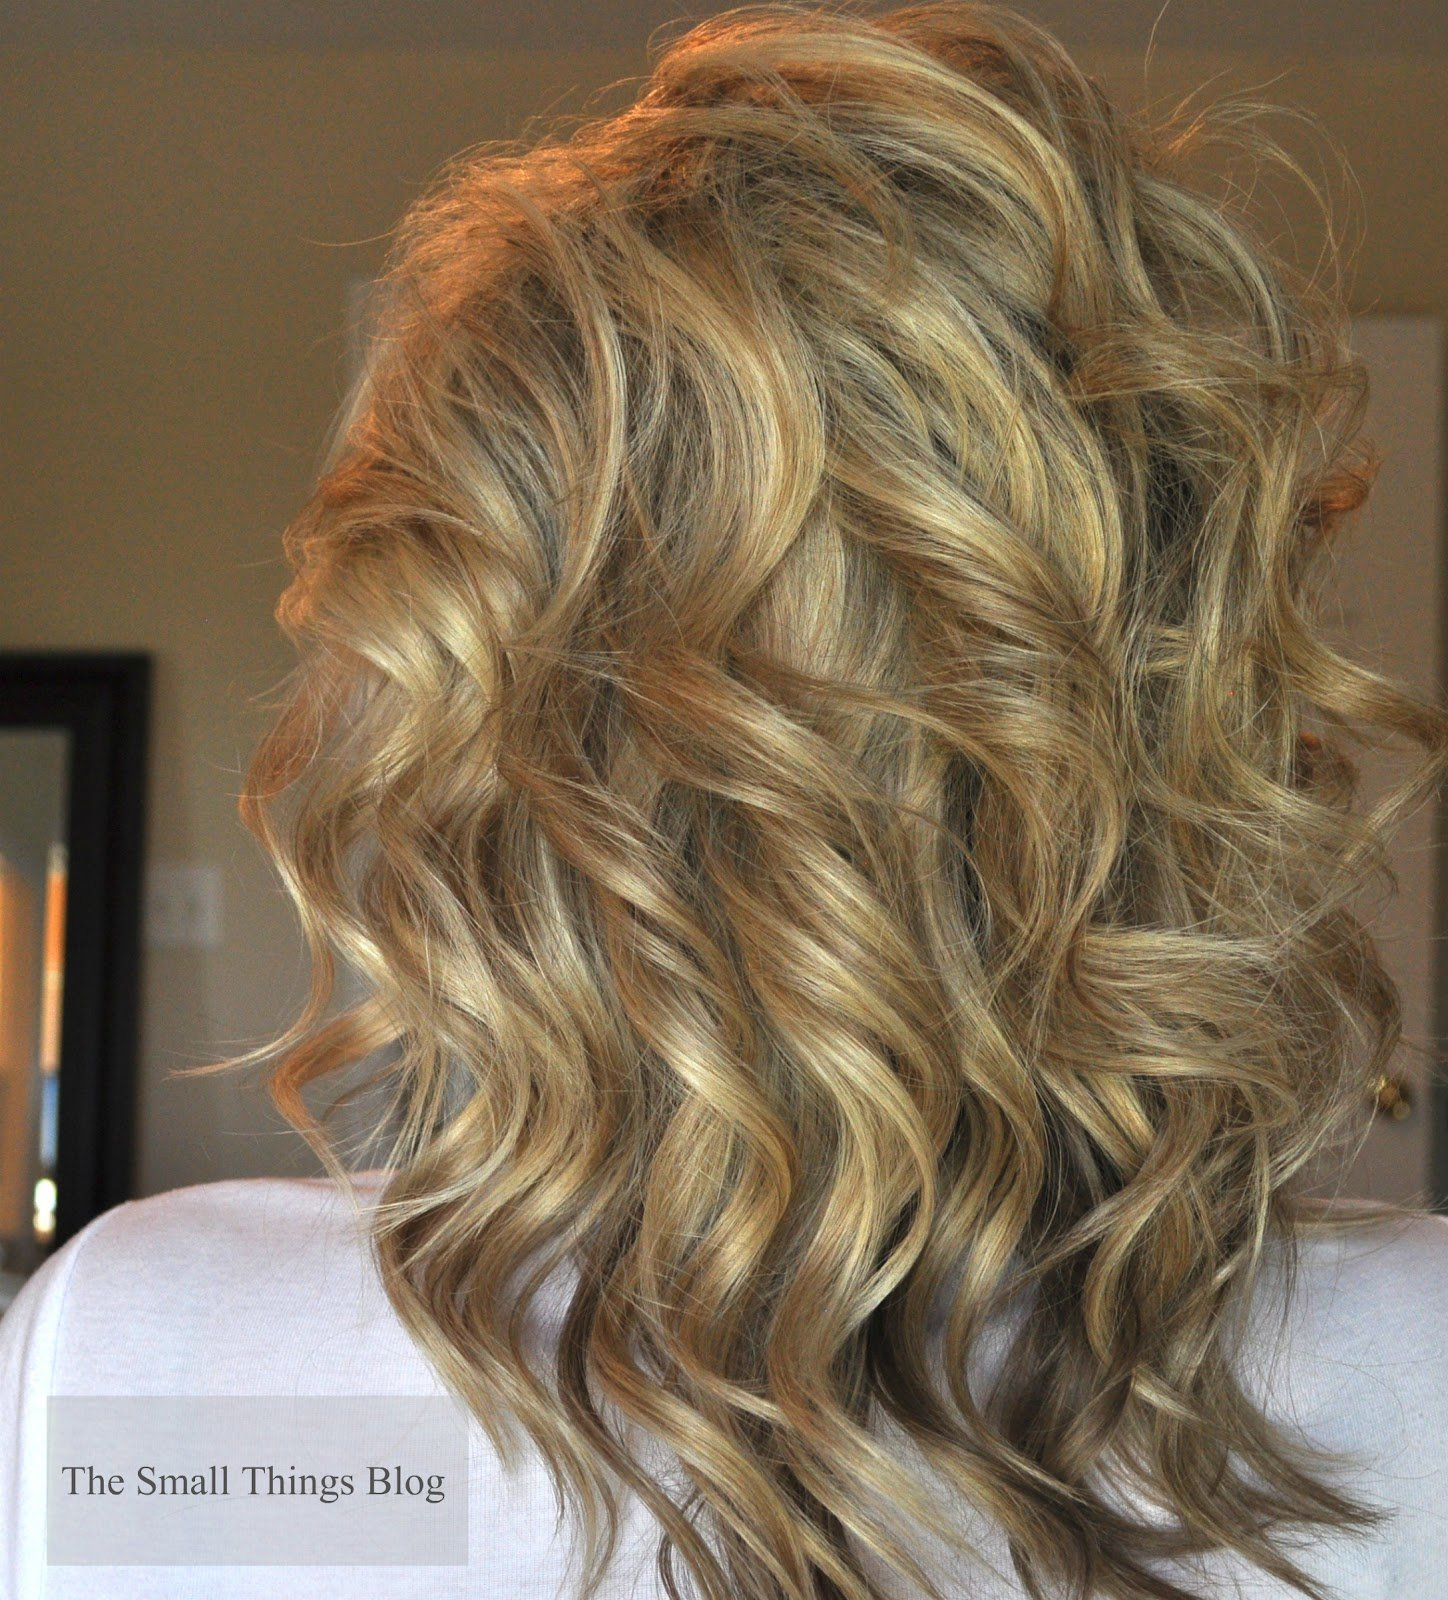 The Best How To Use A Curling Wand – The Small Things Blog Pictures